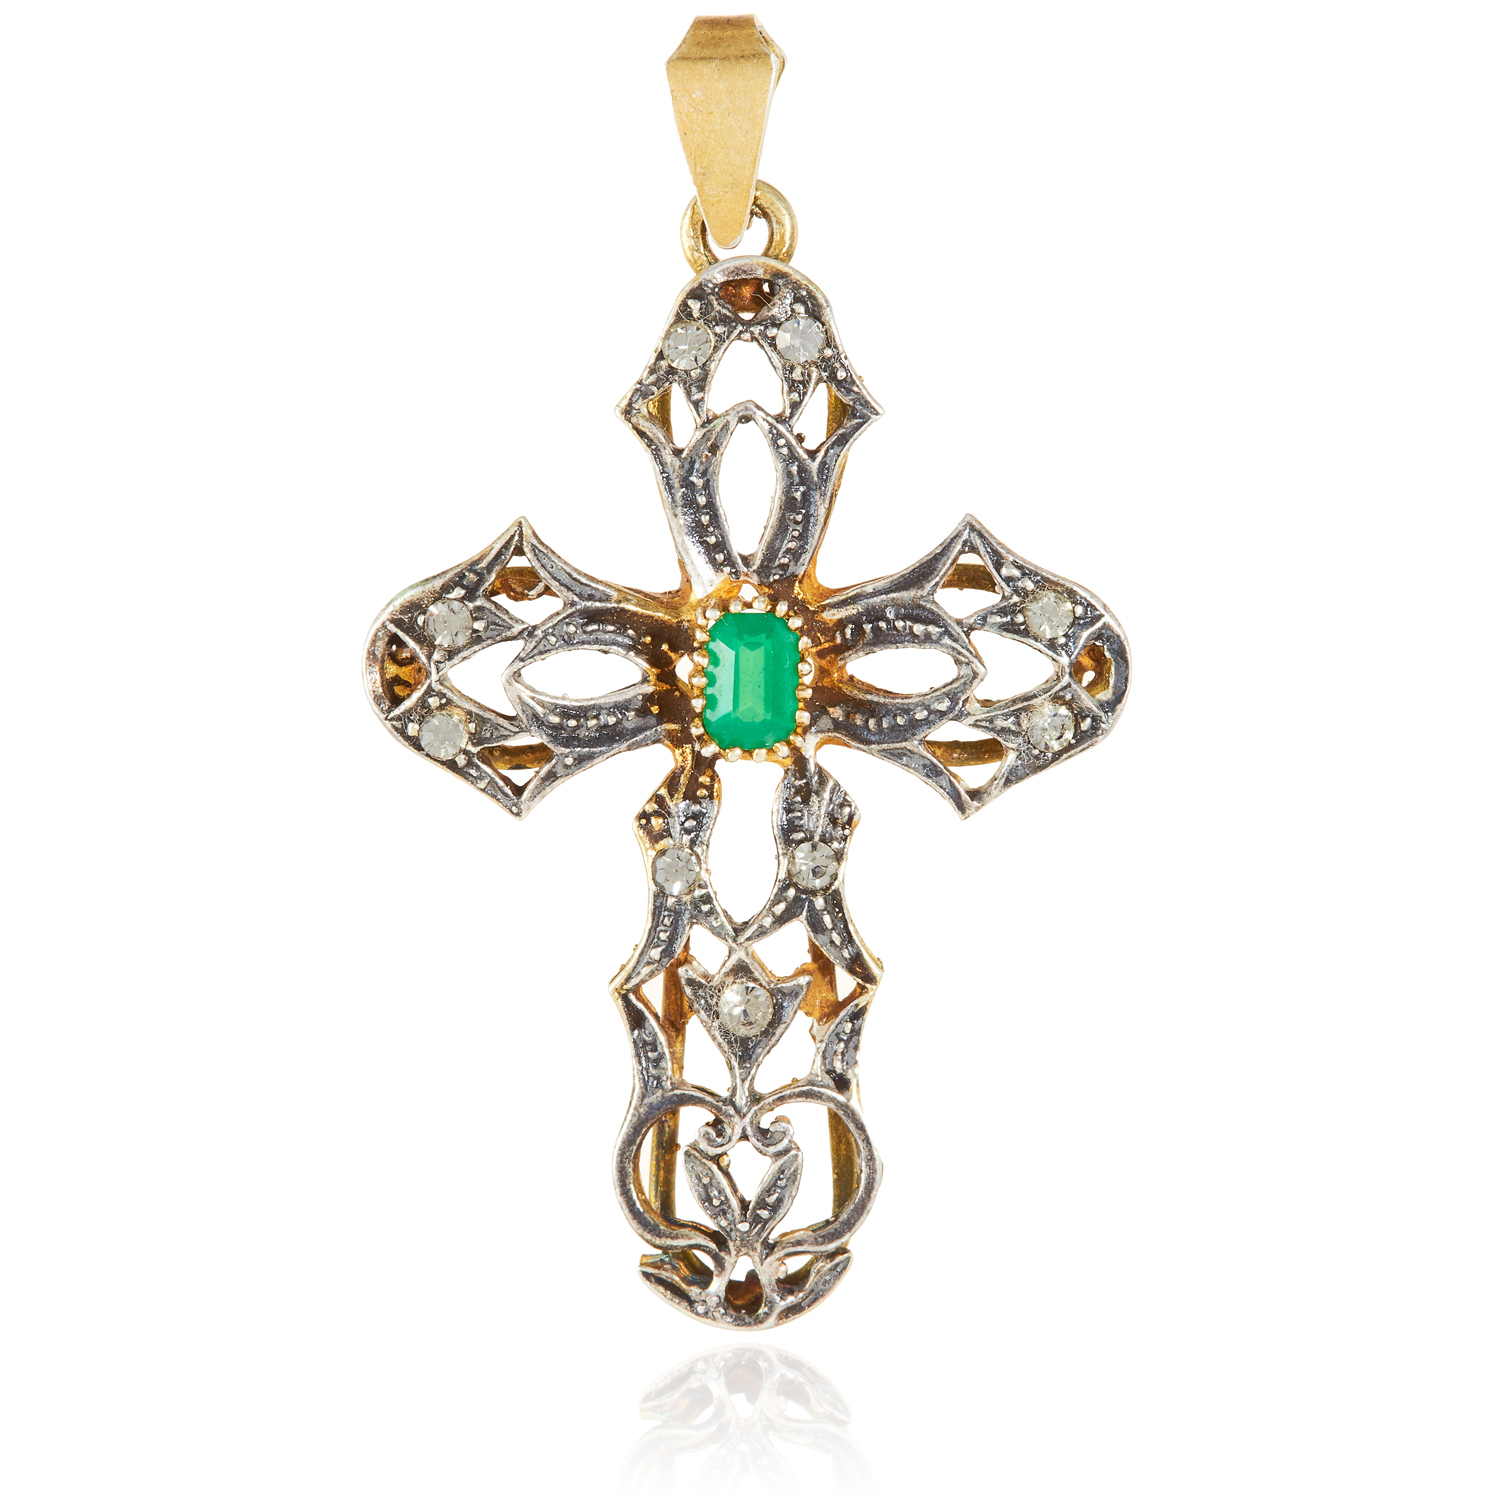 AN EMERALD AND DIAMOND CRUCIFIX PENDANT, PORTUGUESE in high carat yellow gold and silver, the